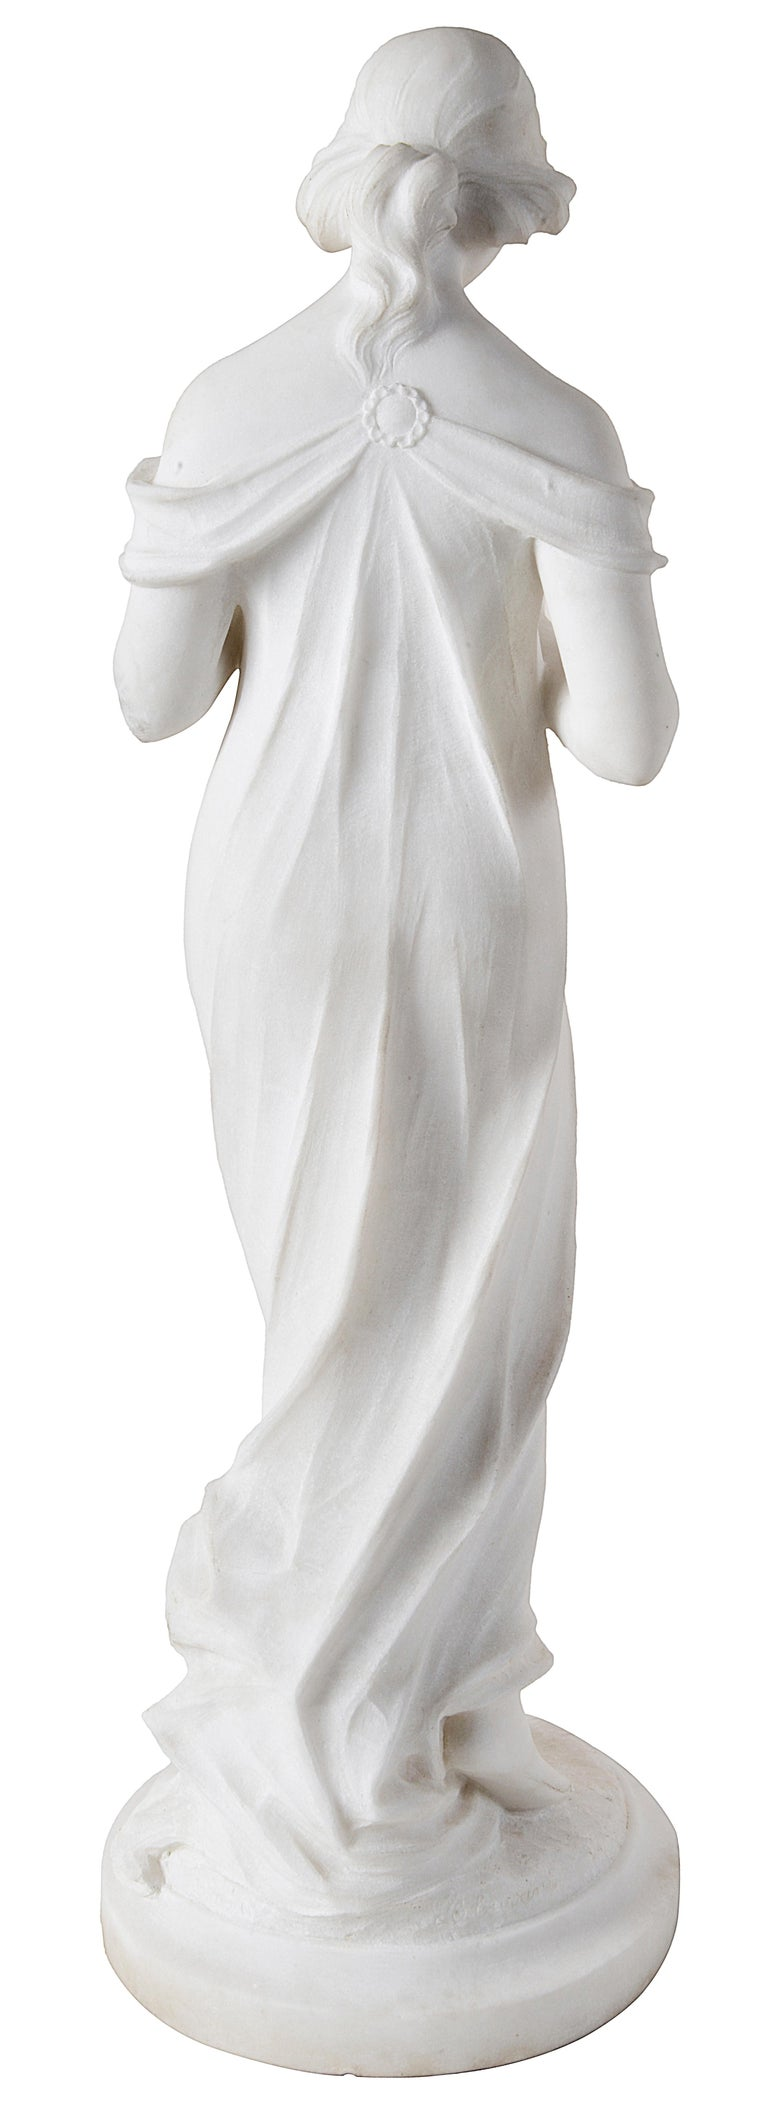 Italian 19th Century Marble Statue of Young Girl Holding Flowers For Sale